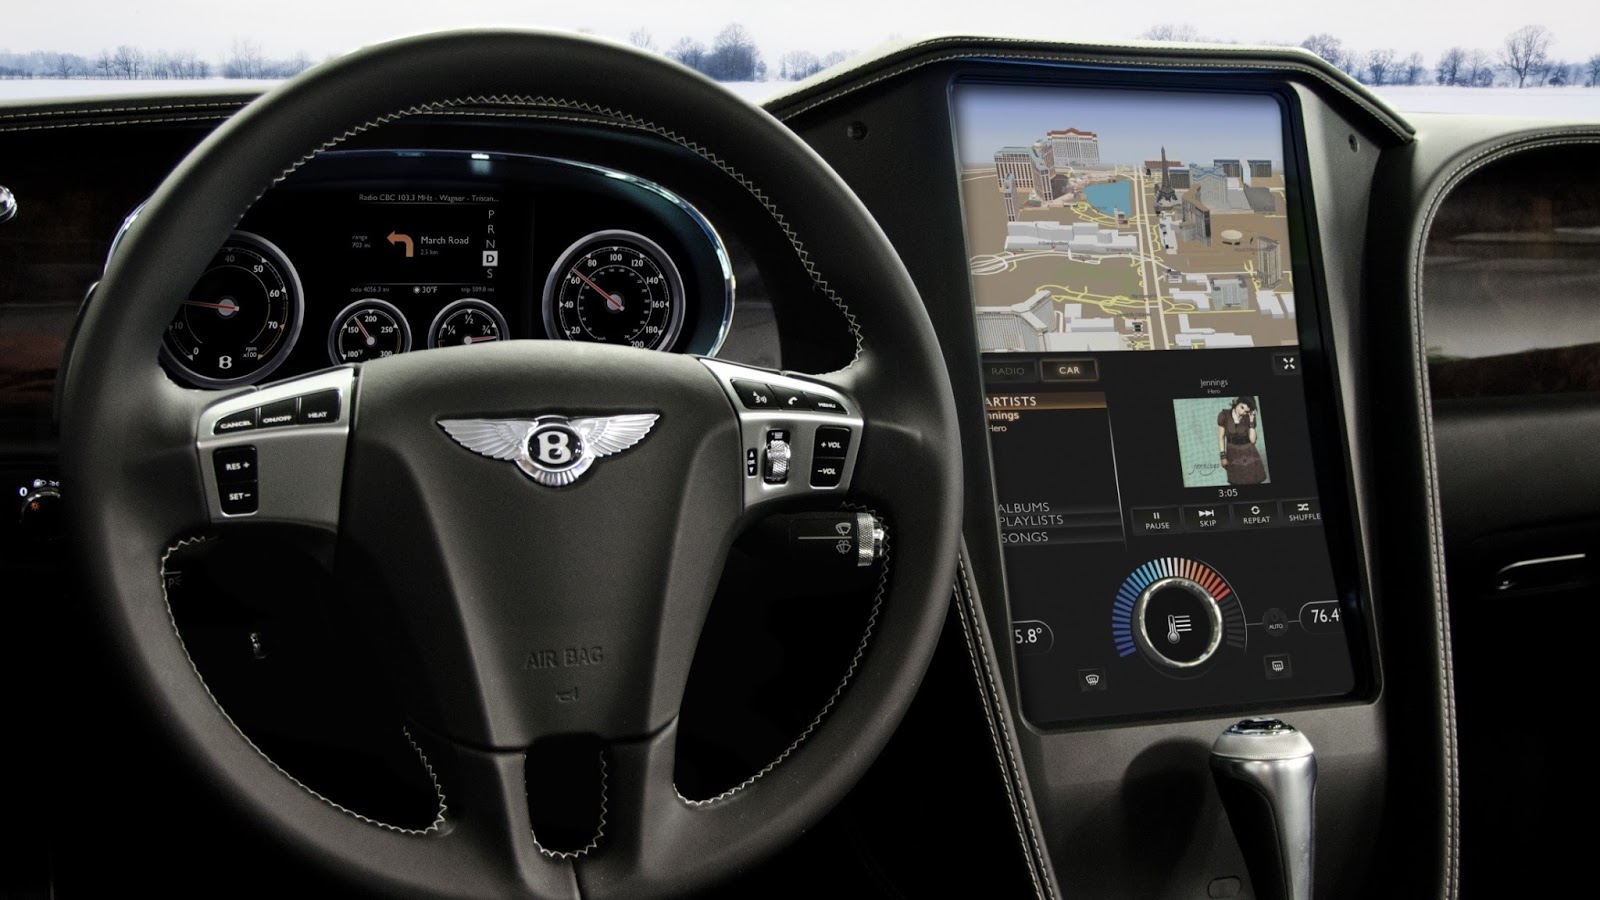 Tips on Choosing a Vehicle LCD Monitor